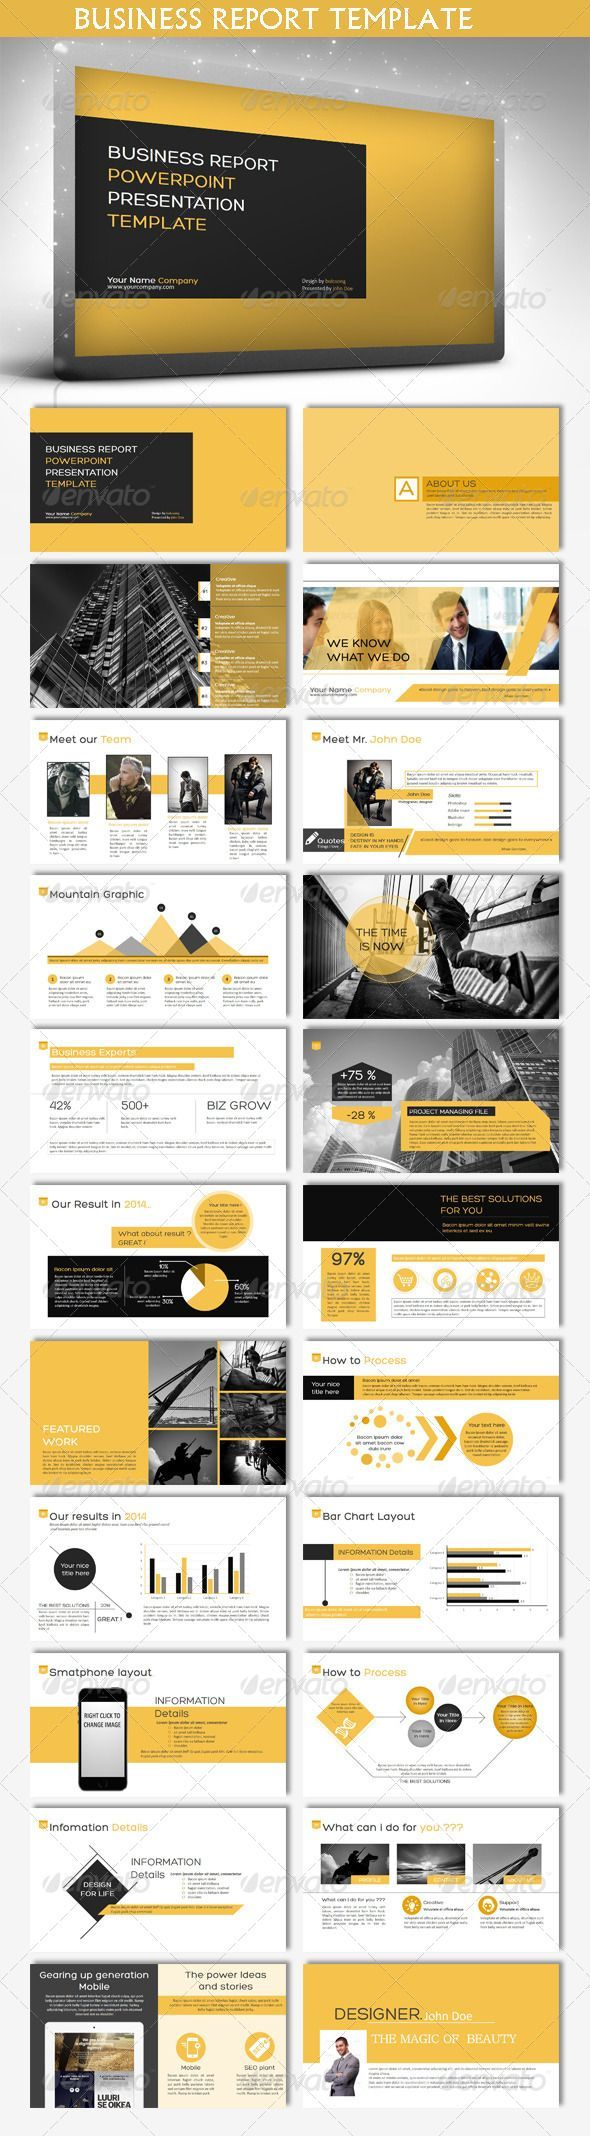 Business Report Powerpoint Template (Powerpoint Templates ...